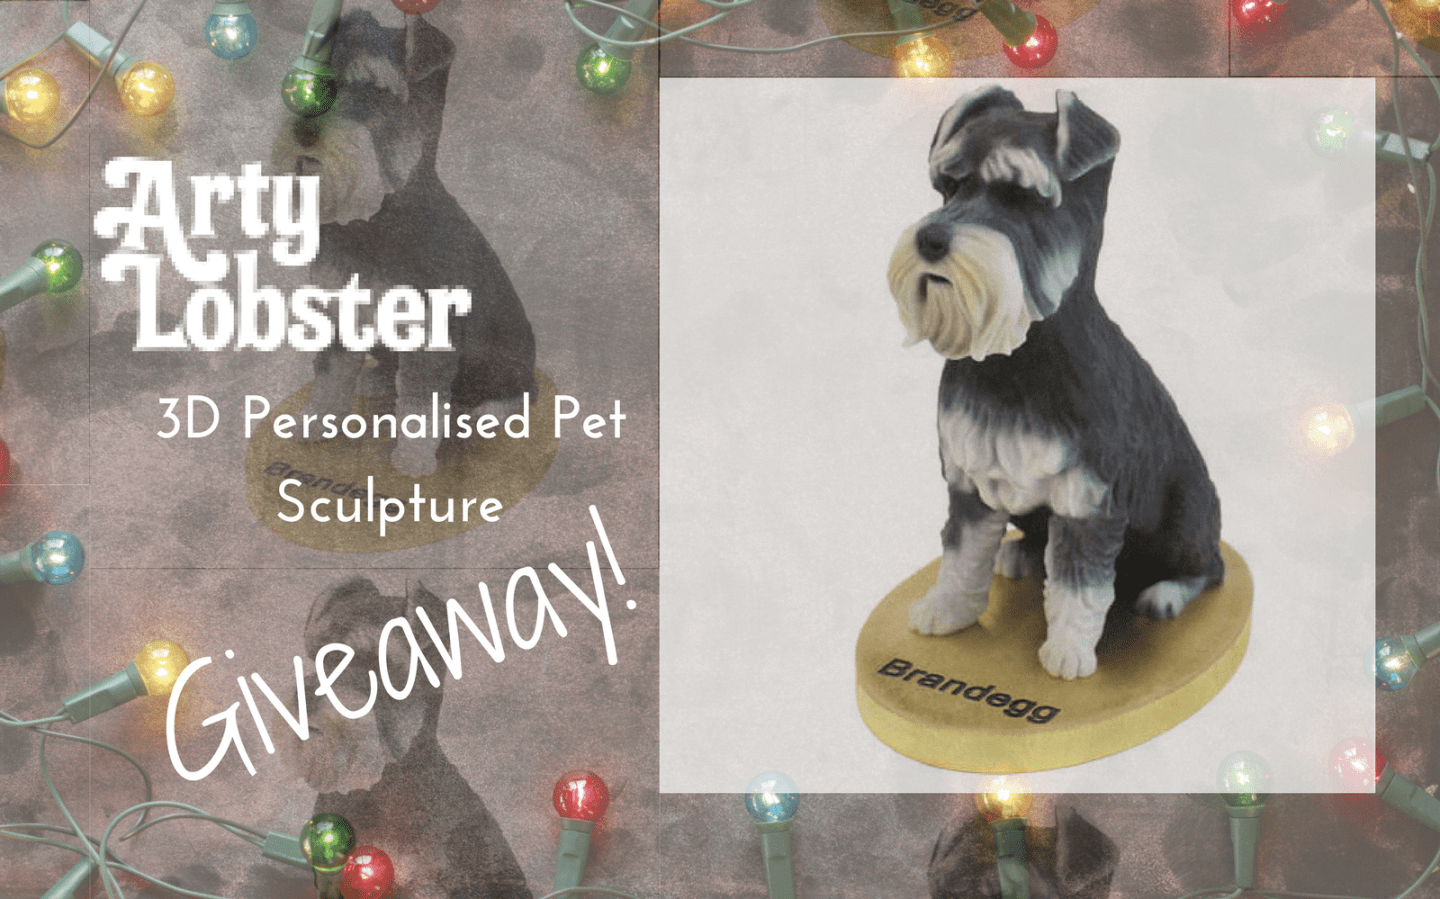 WIN A 3D Personalised Pet Sculpture With Arty Lobster